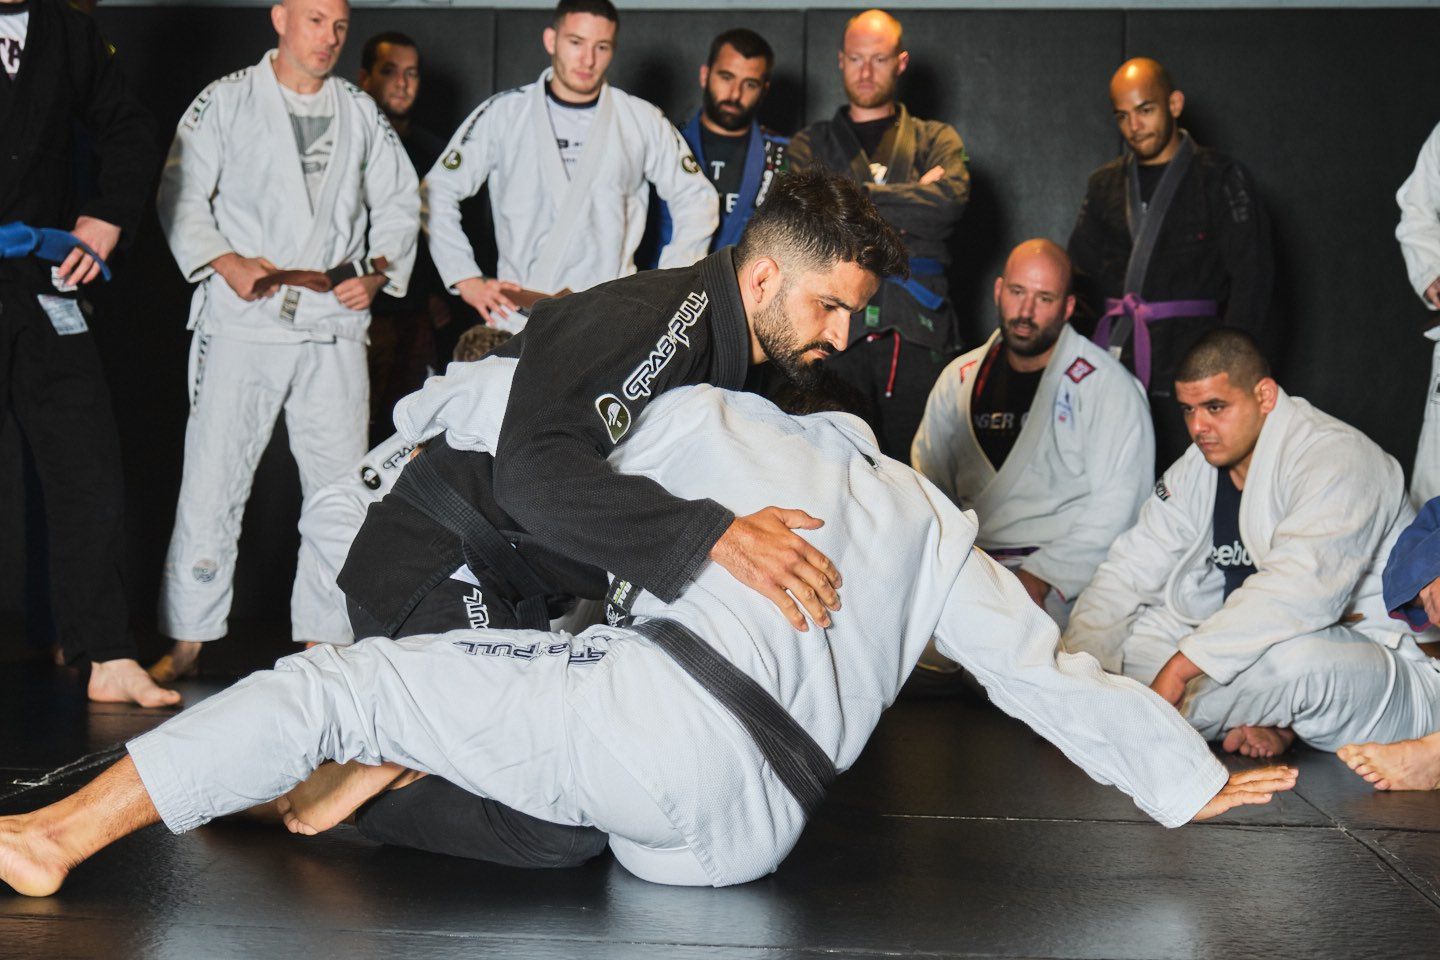 BJJ Technique Teaching